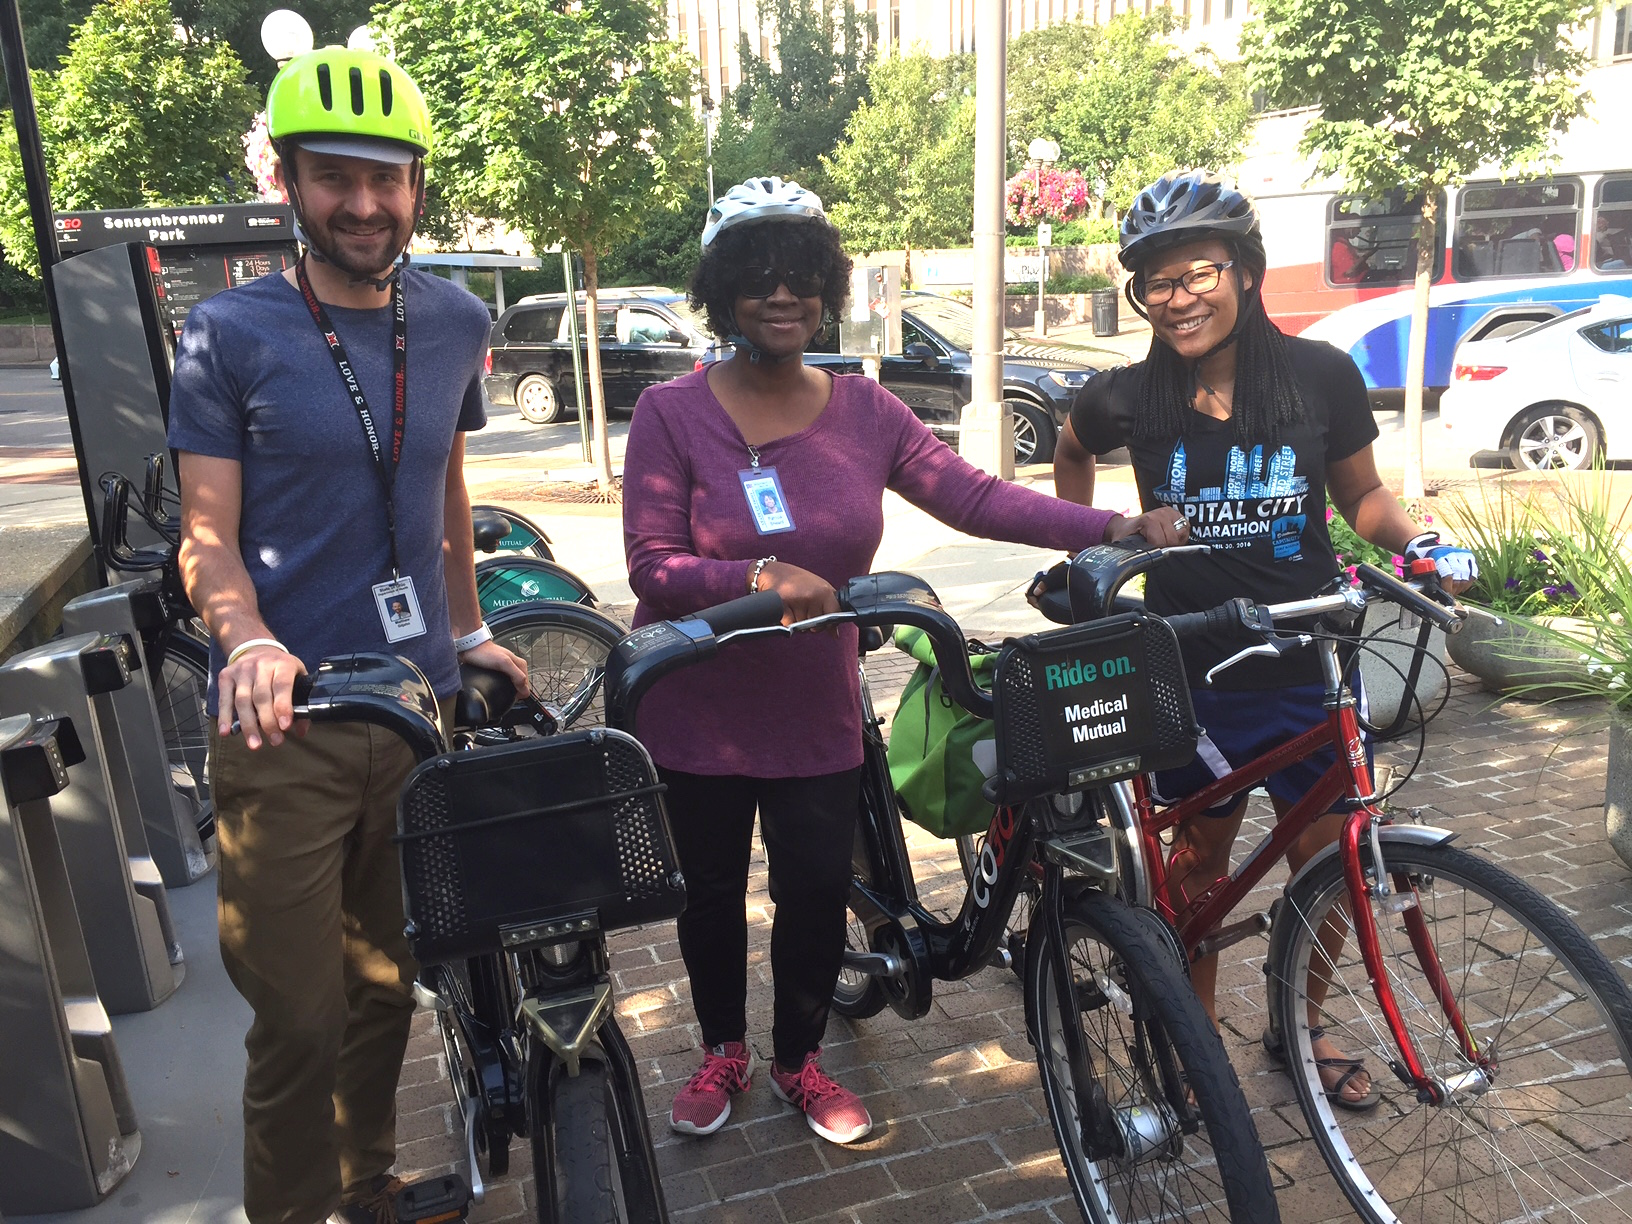 Tonni, right, joins her Ohio Department of Health colleagues on a Ride Buddy ride.